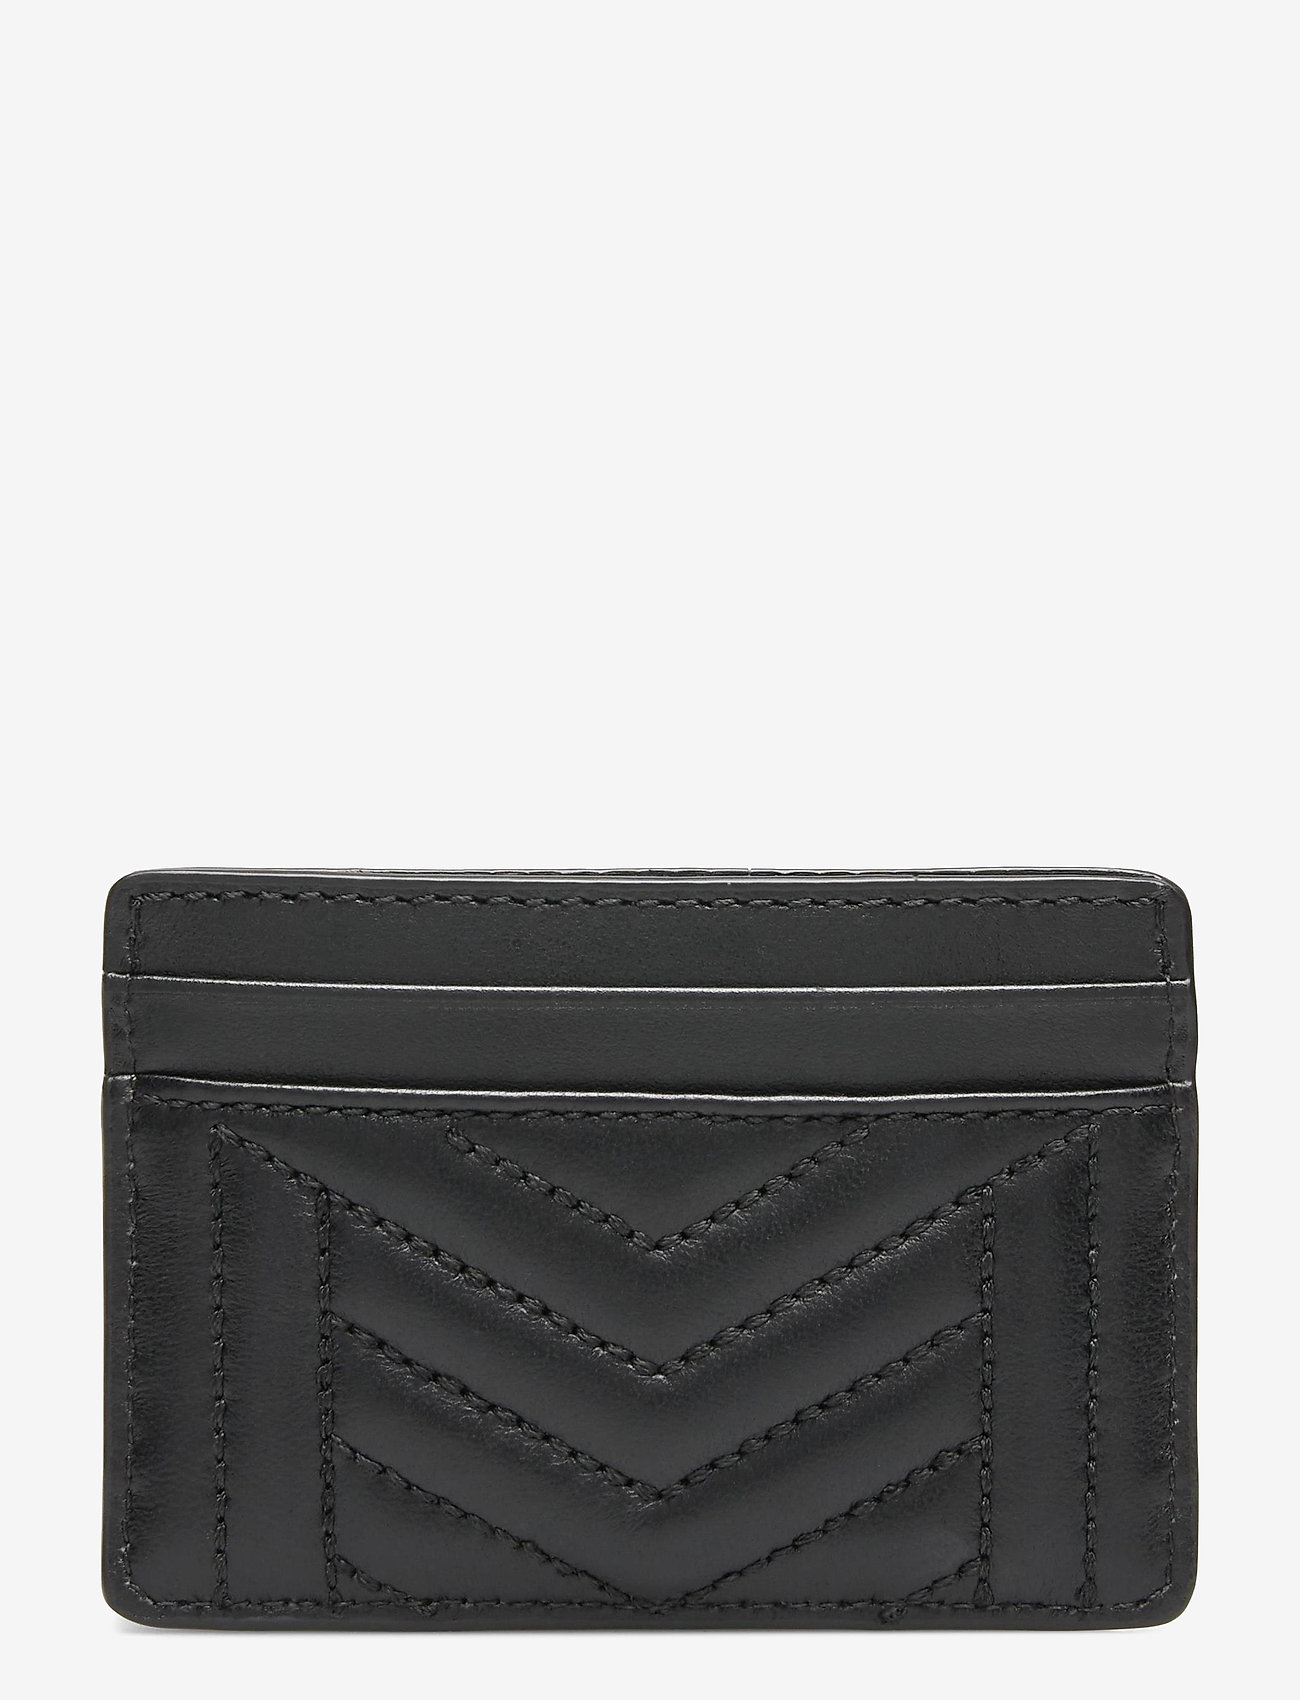 Michael Kors - CARD HOLDER - kaart houders - black - 1